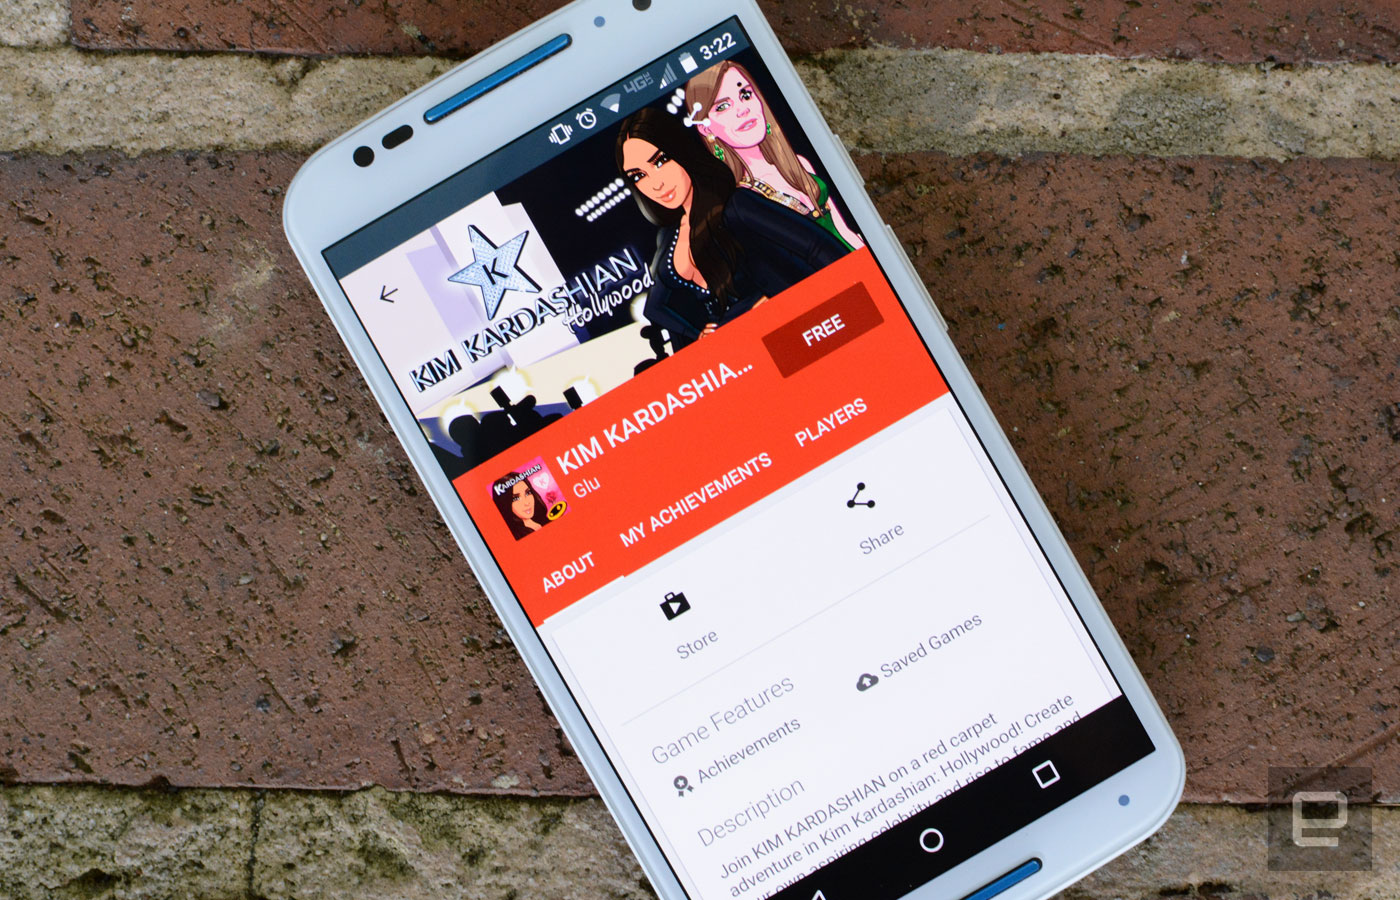 Google Play Games ditches the Google+ log-in requirement